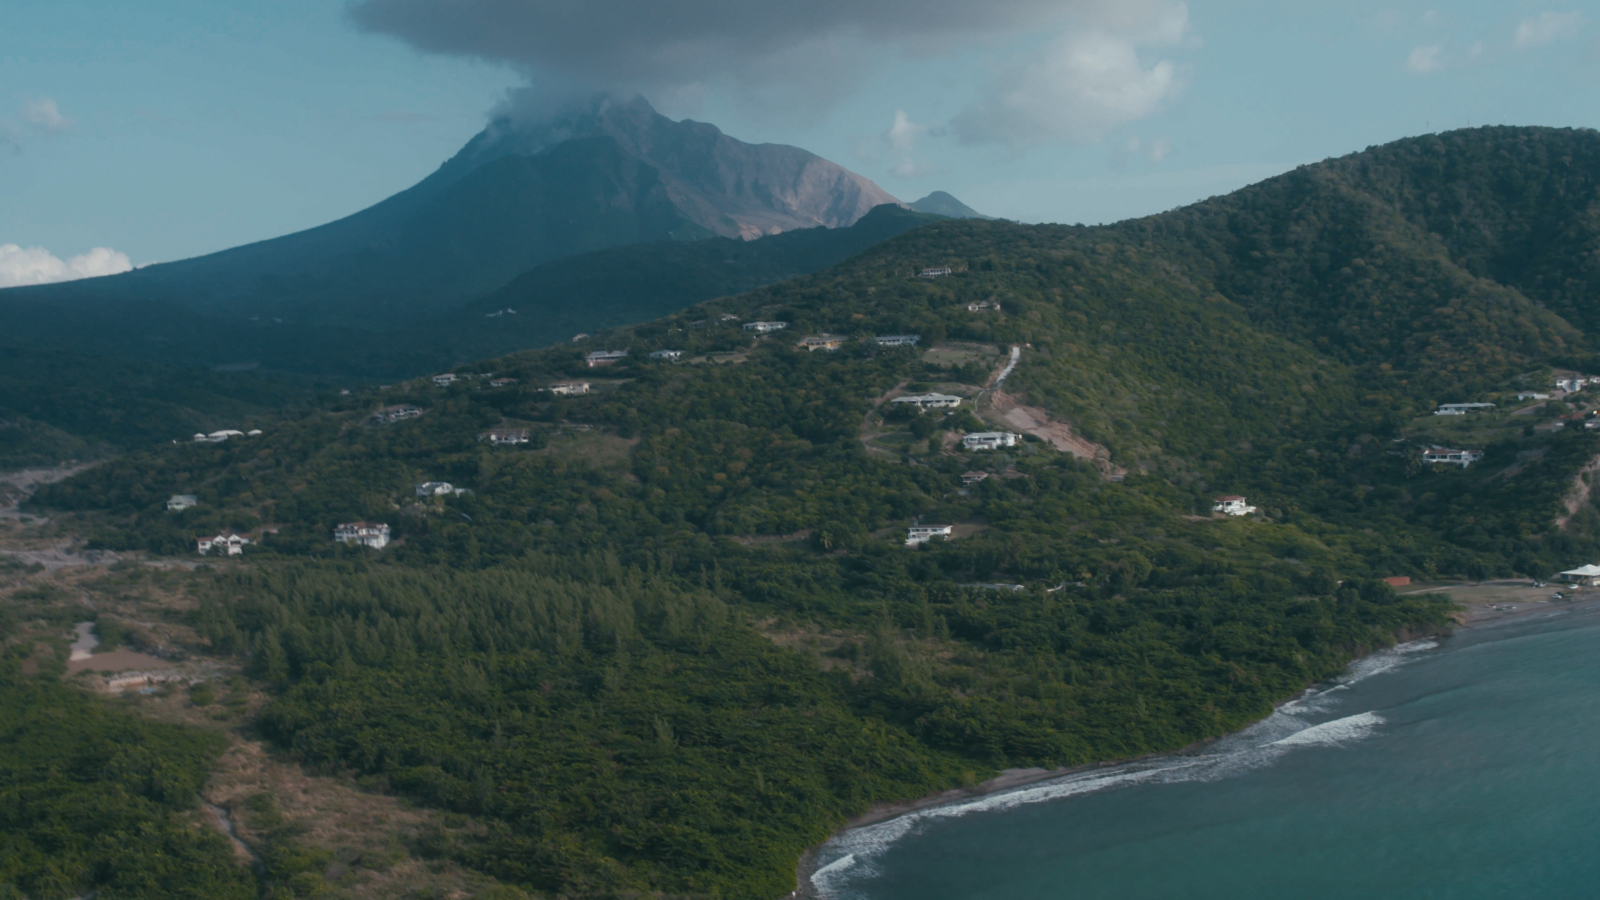 The devil in disguise: filmmaking lives under the threat of volcanoes.